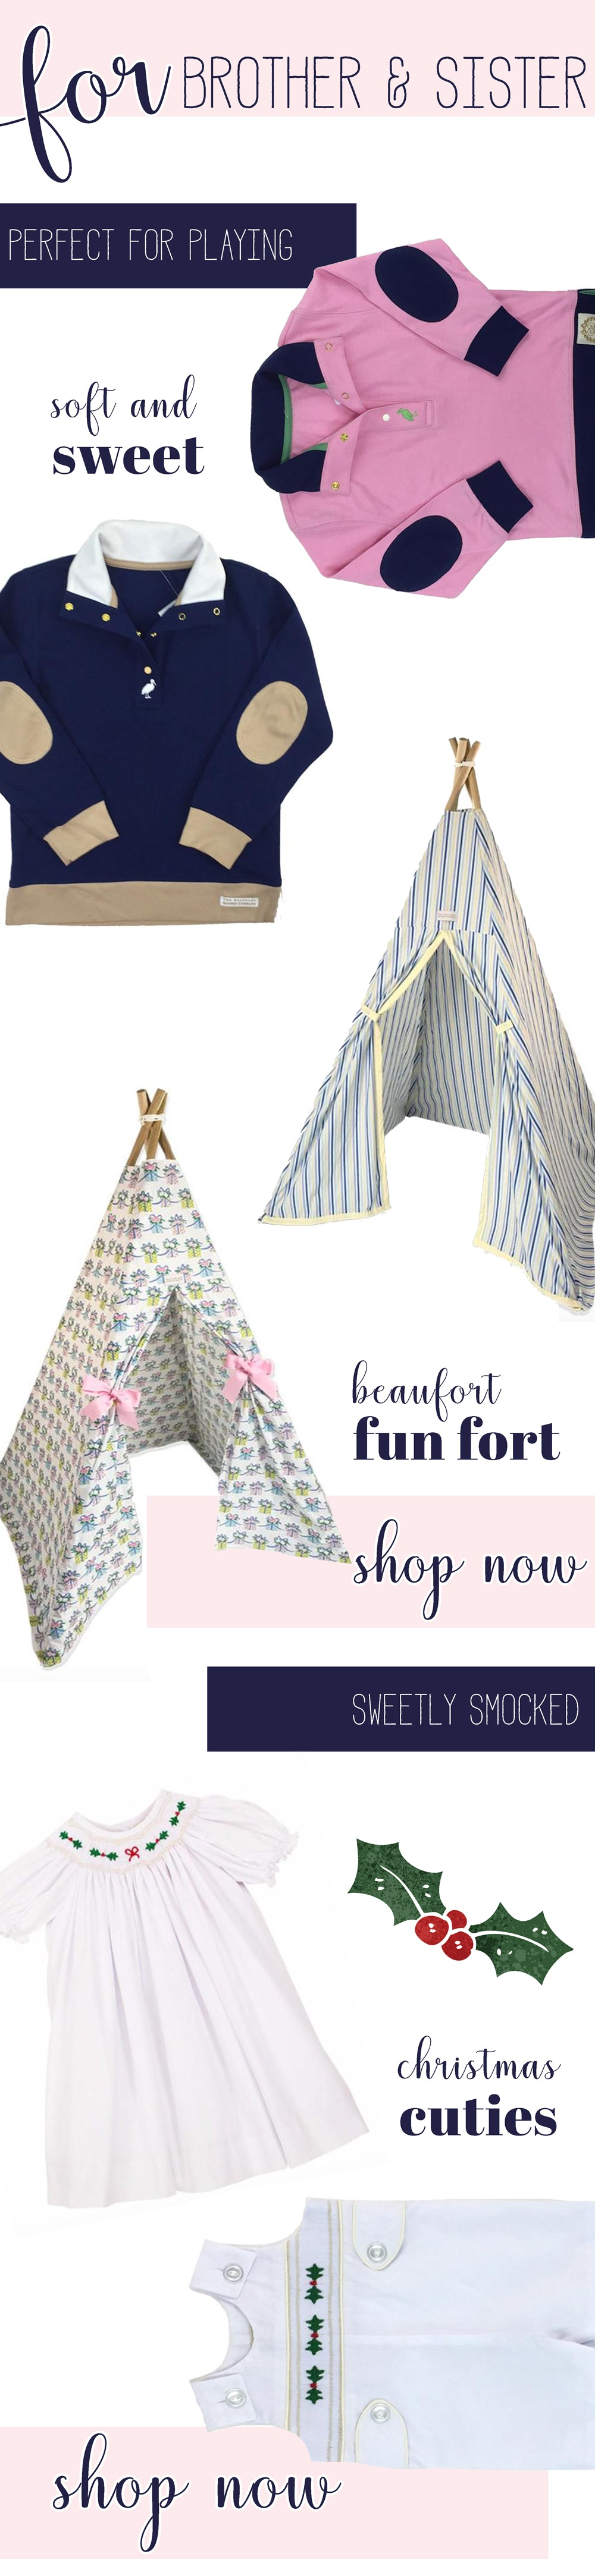 The Beaufort Bonnet Company Christmas 2017 Gift Guides | For Brother and Sister featuring playwear